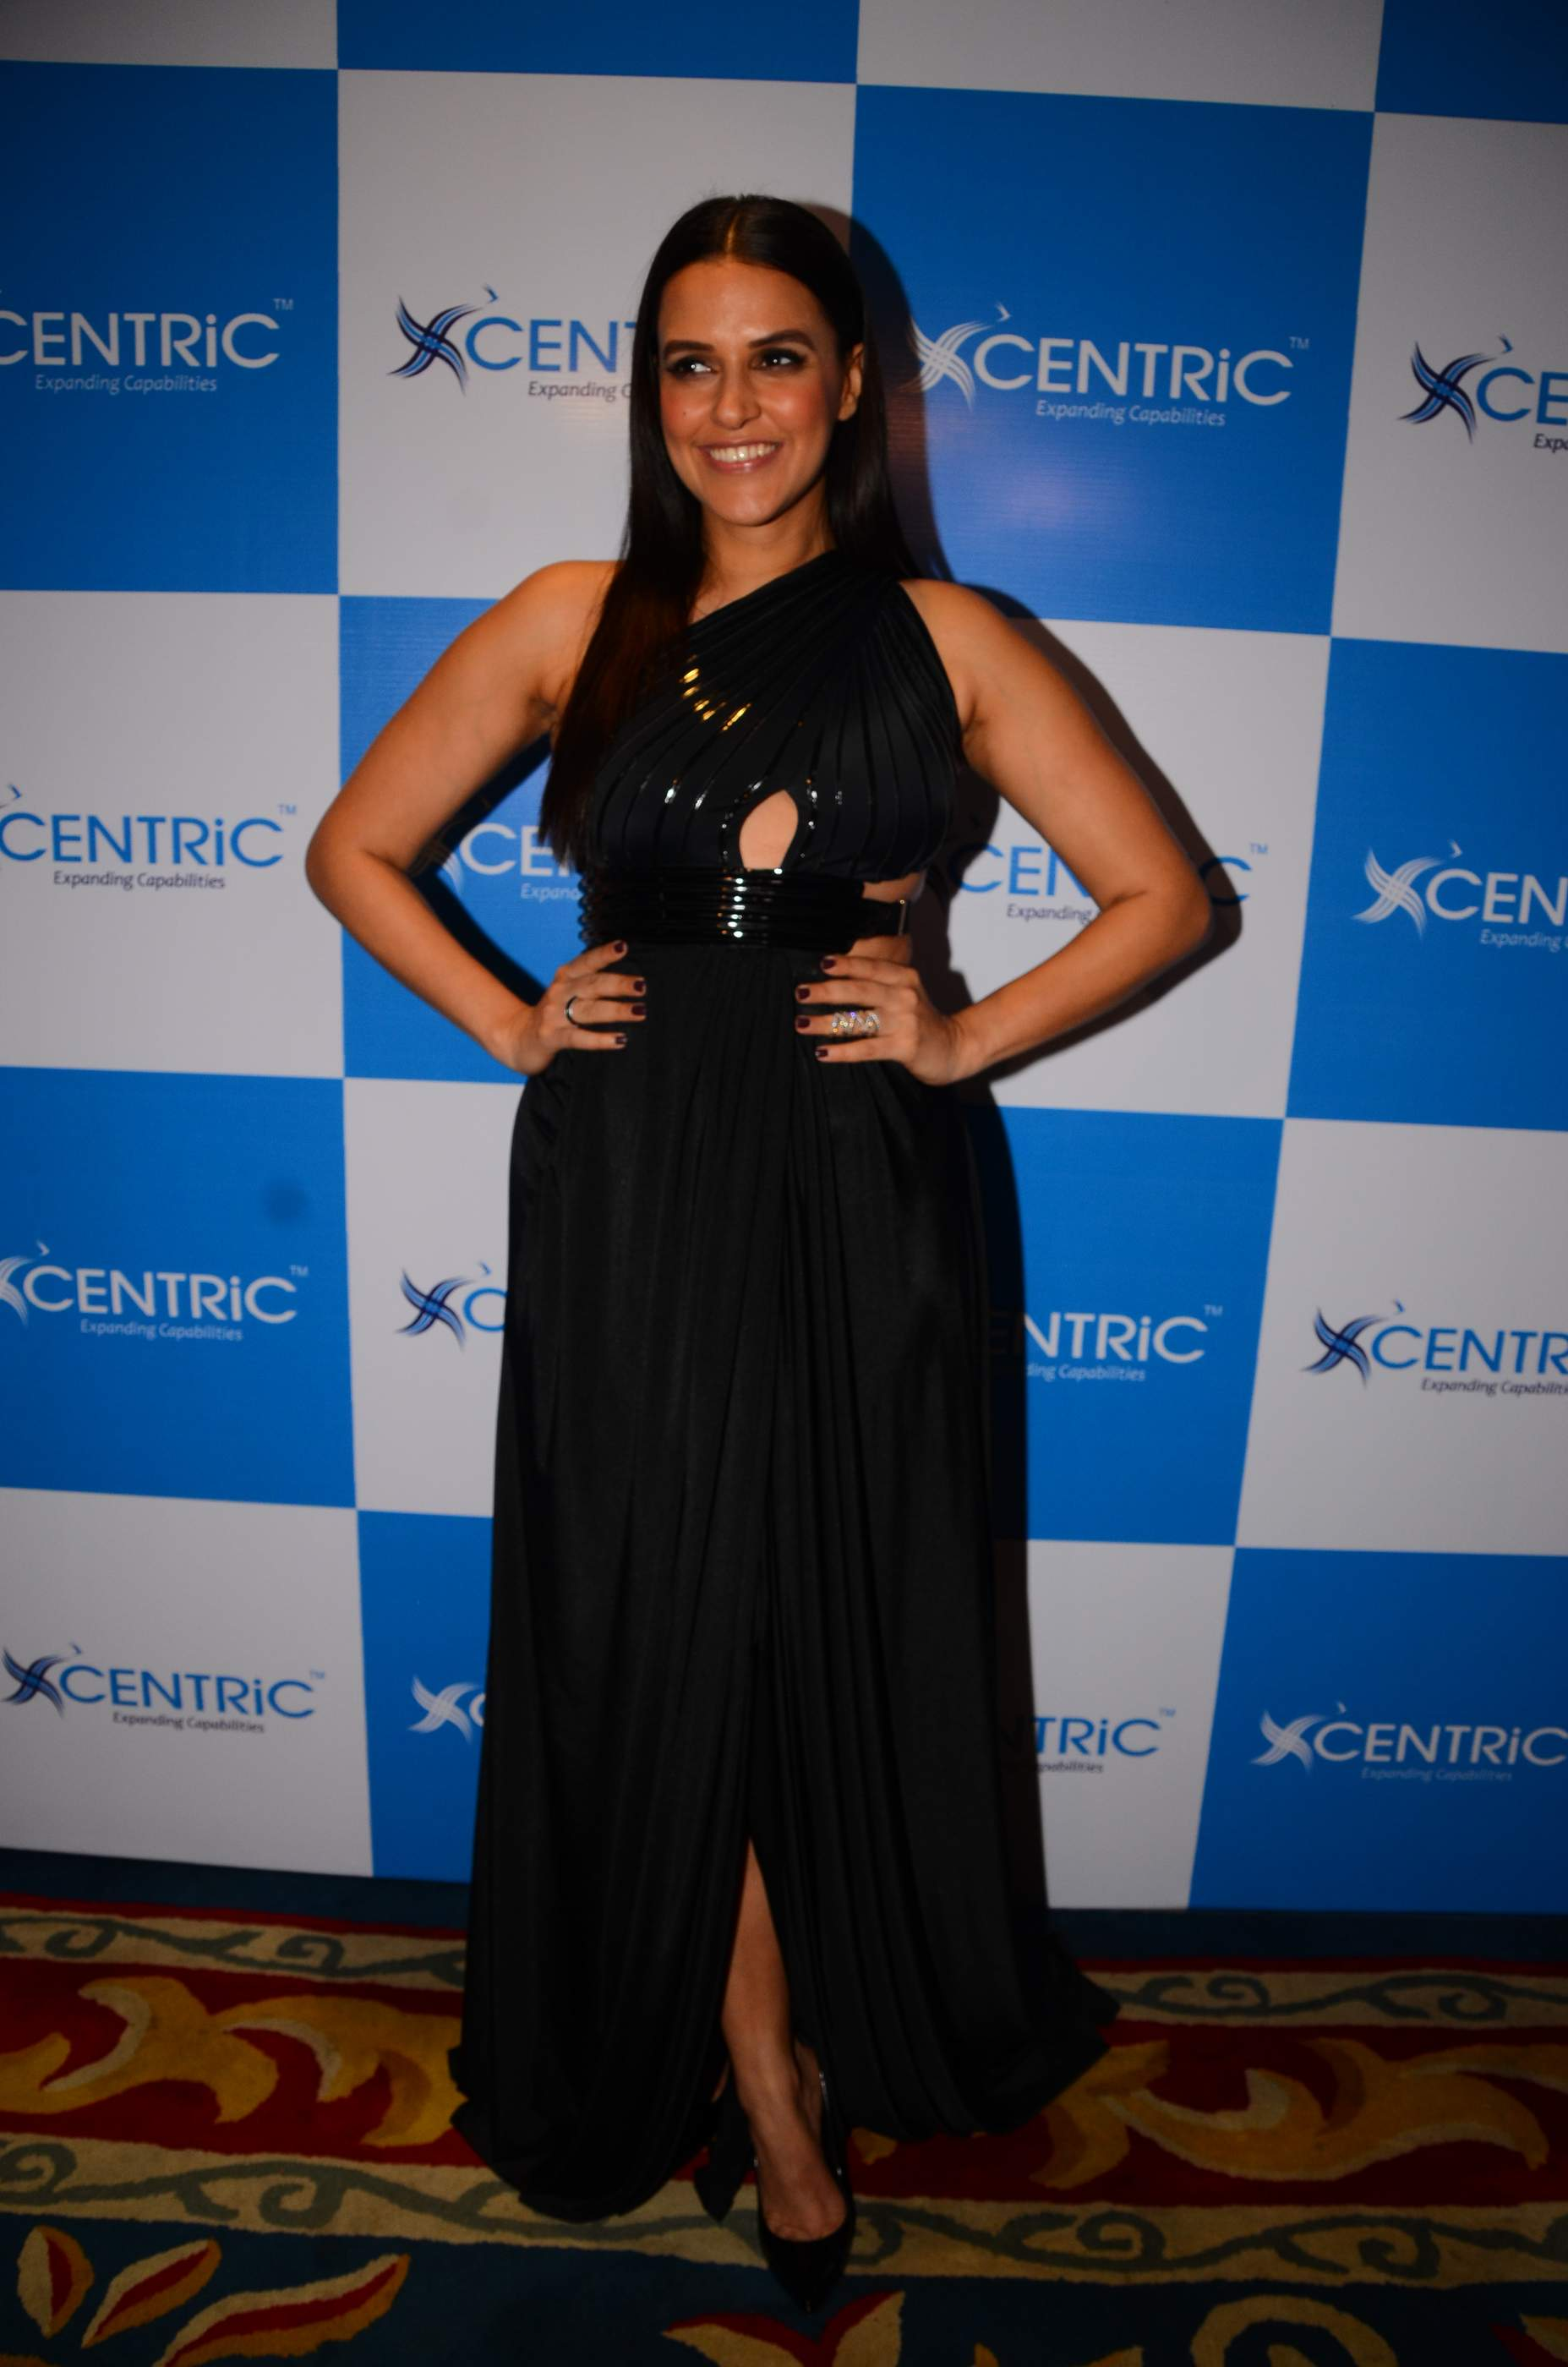 HOT Photo Stills Of Beauty Queen Neha Dhupia | Xcentric HOT Photo Stills Of Beauty Queen Neha Dhupia | Xcentric Neha Dhupia Xcentric 20